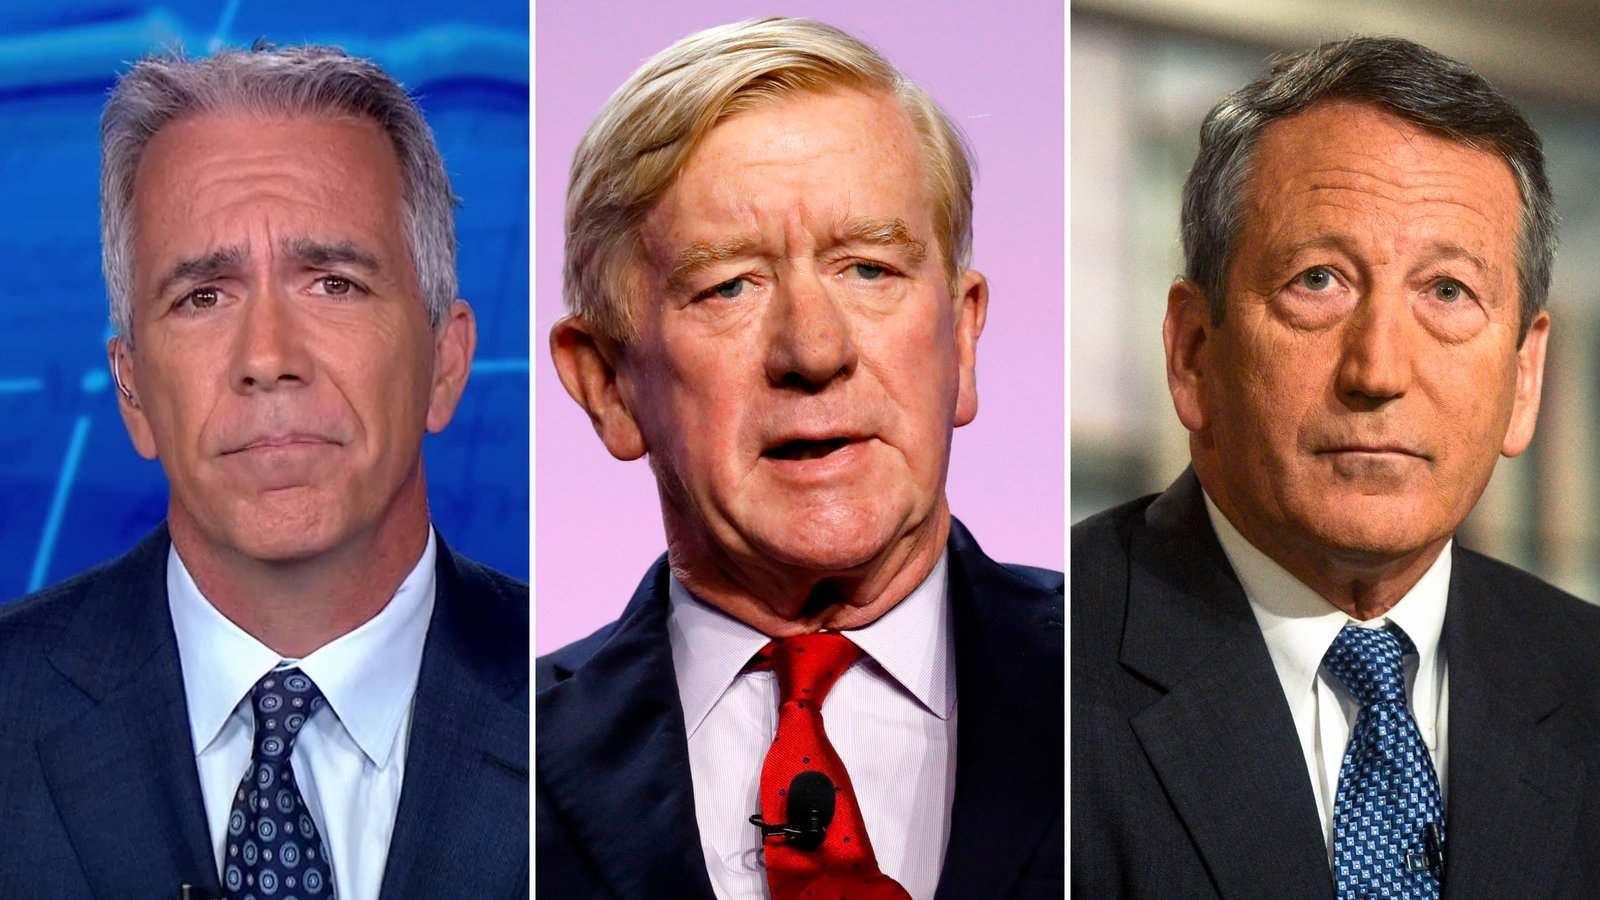 GOP Trump challengers slam canceled primaries: 'Only the weak fear competition'